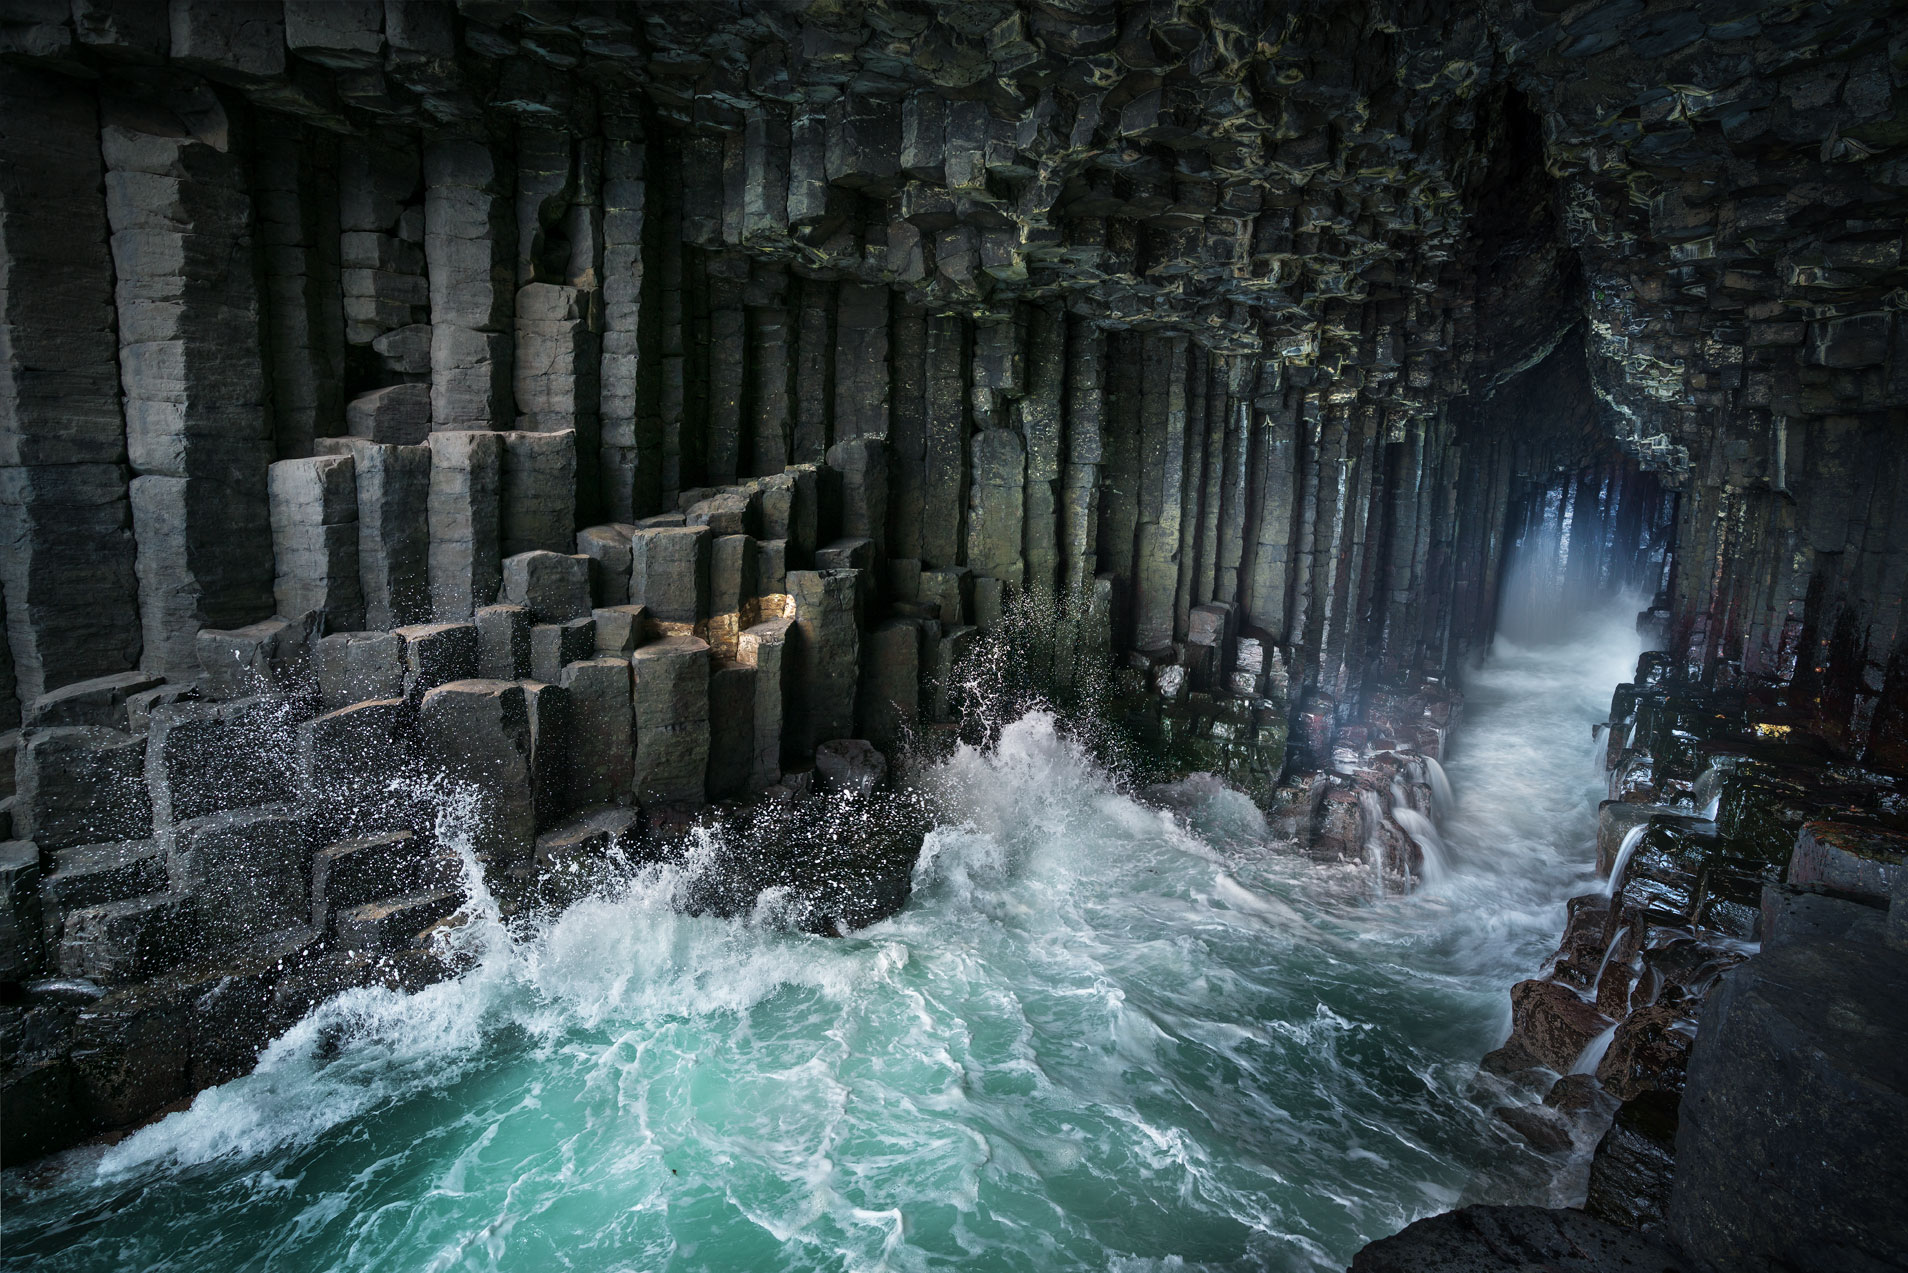 scotland-photography-workshop-isle-of-mull-finglas-cave.jpg